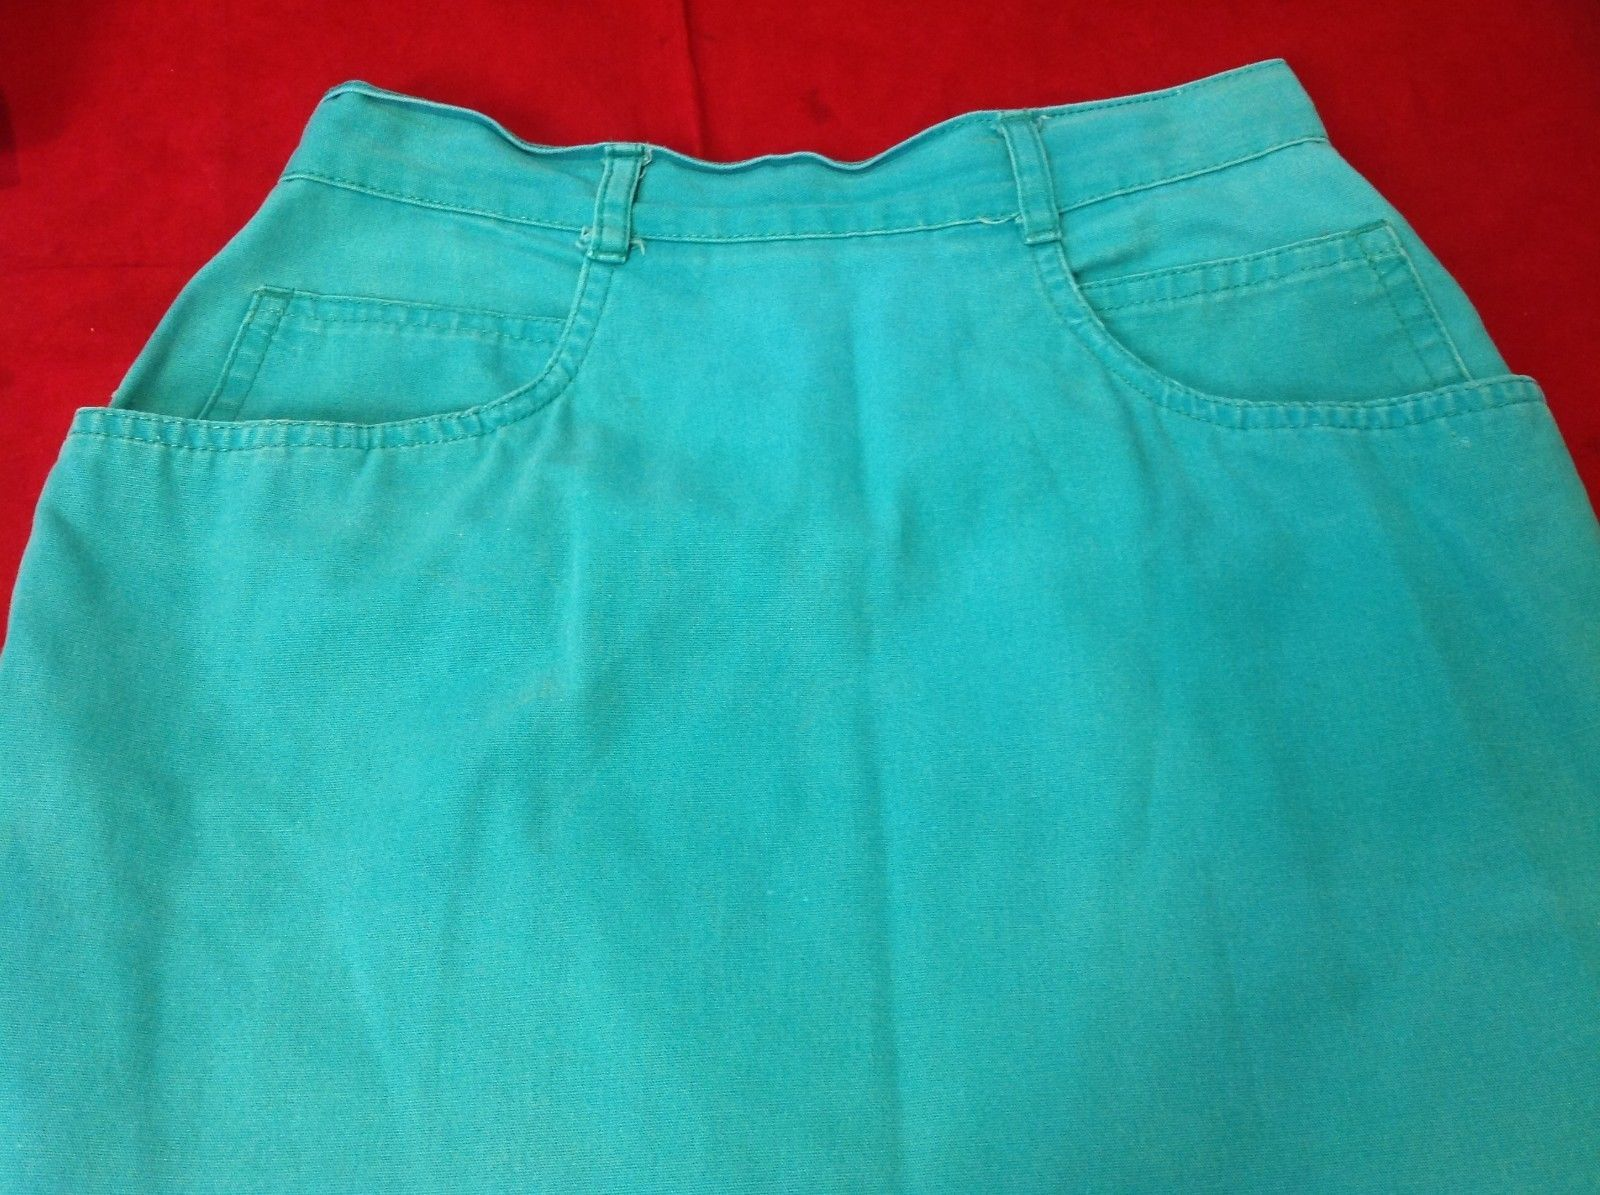 Spirit  Women's  Skirt size small turquoise